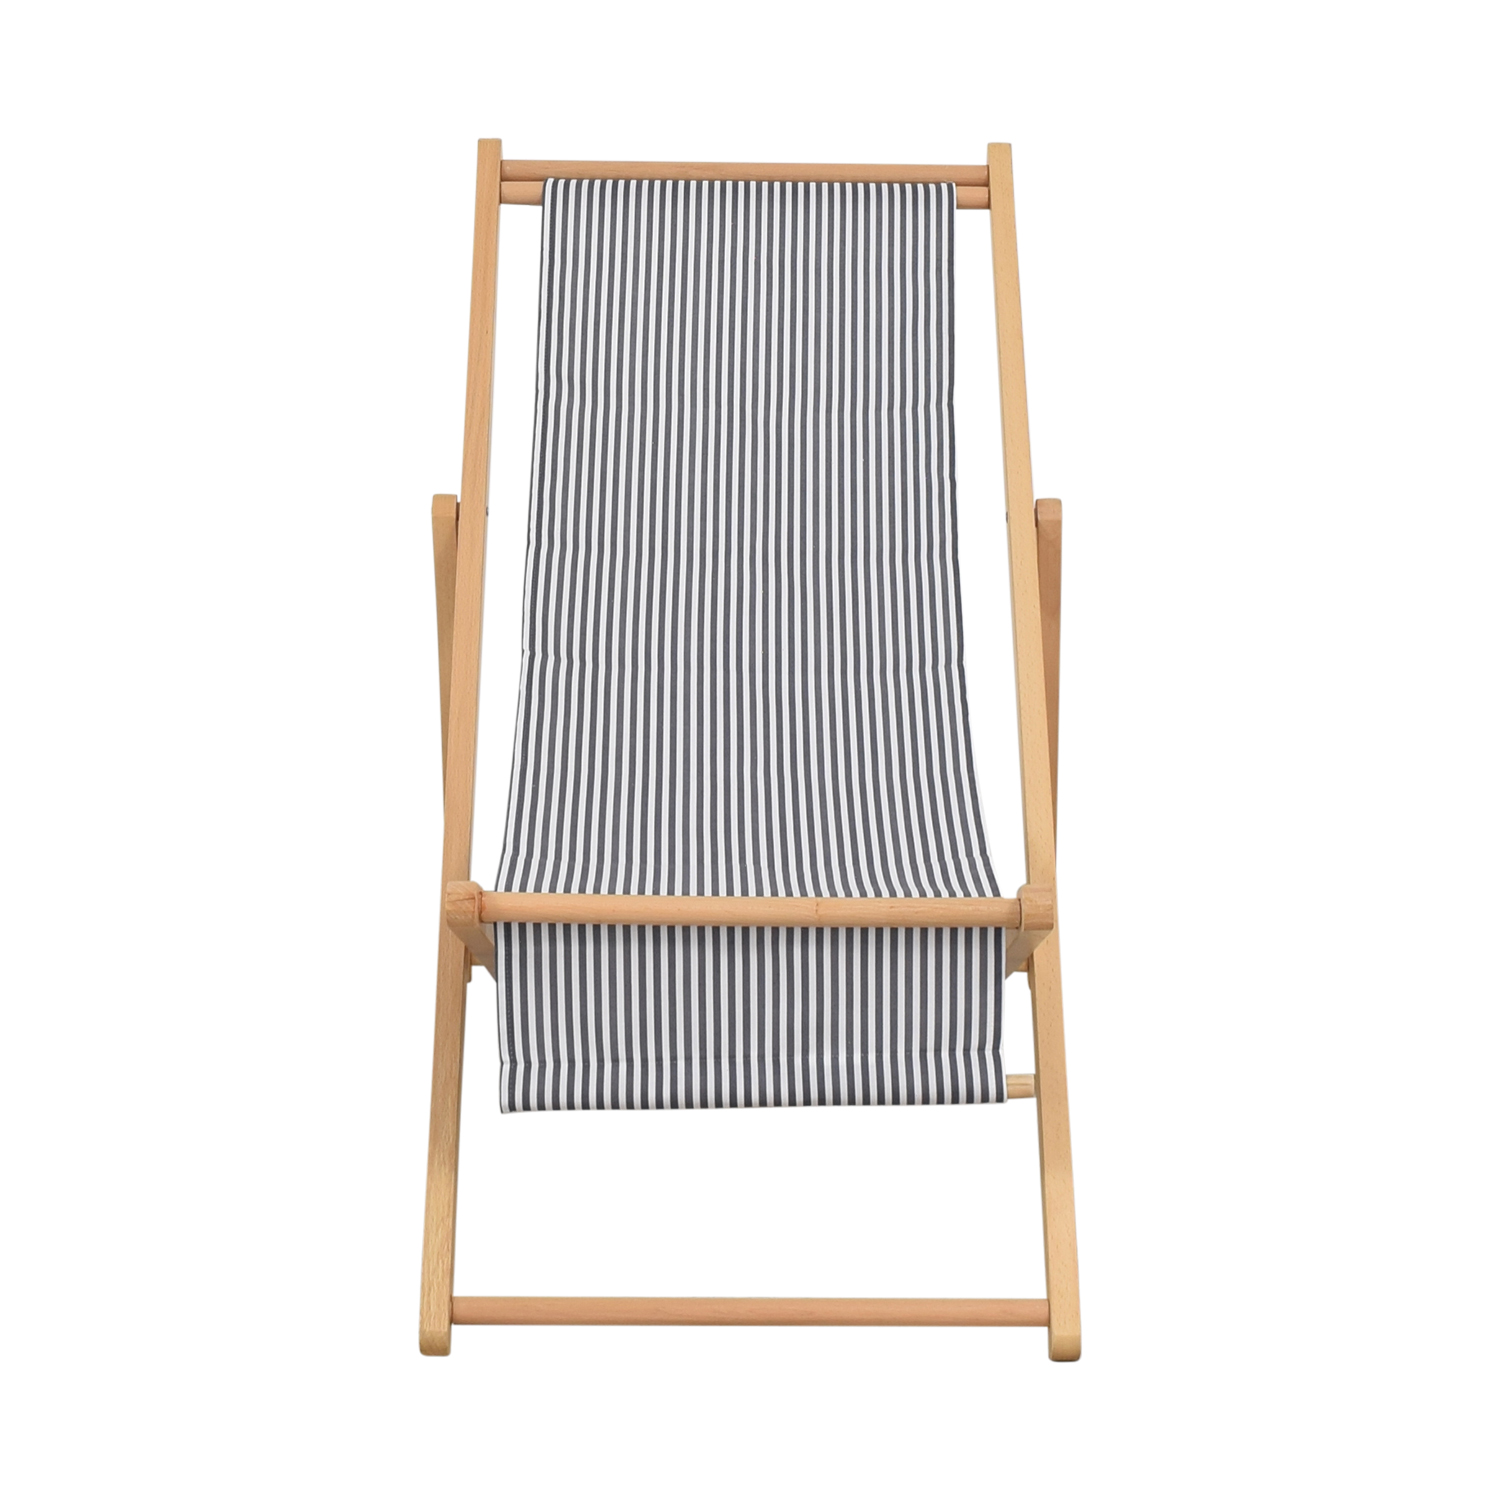 The Inside The Inside Cabana Chair with Sling price